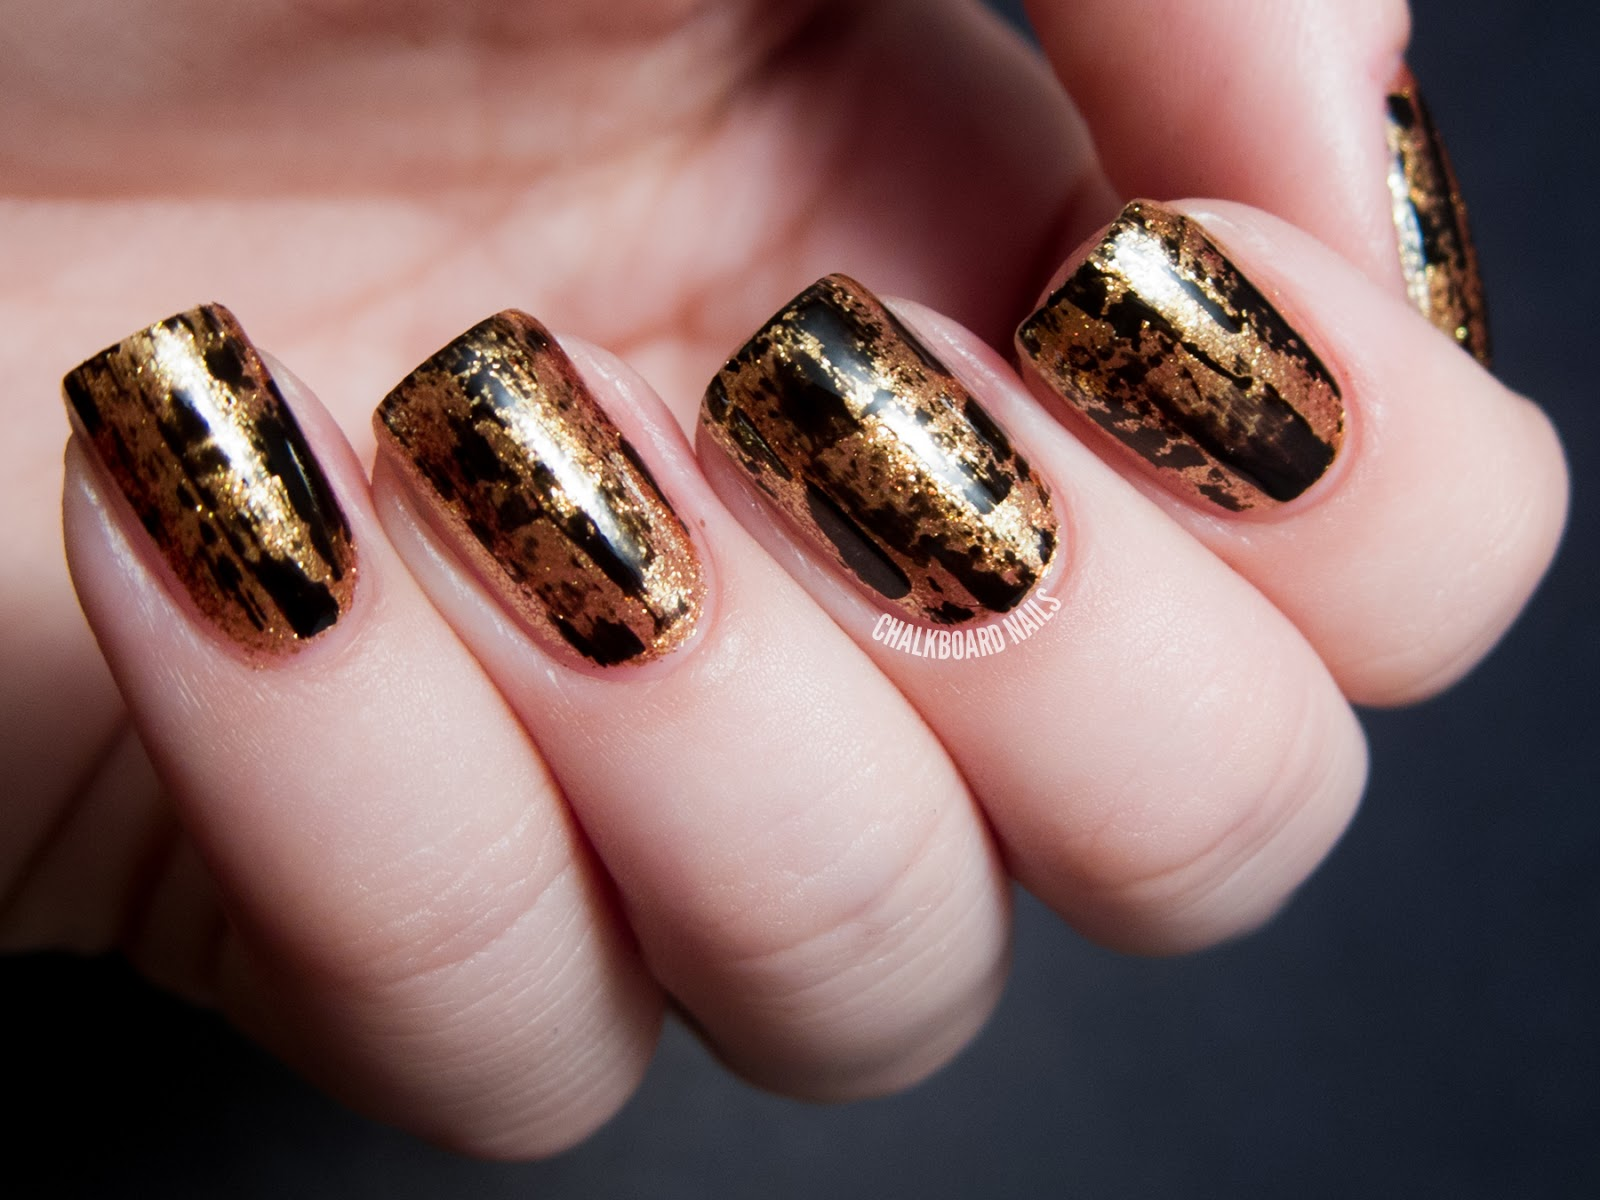 Party perfect black and gold nail art ideas chalkboard nails party perfect black and gold nail art ideas prinsesfo Images